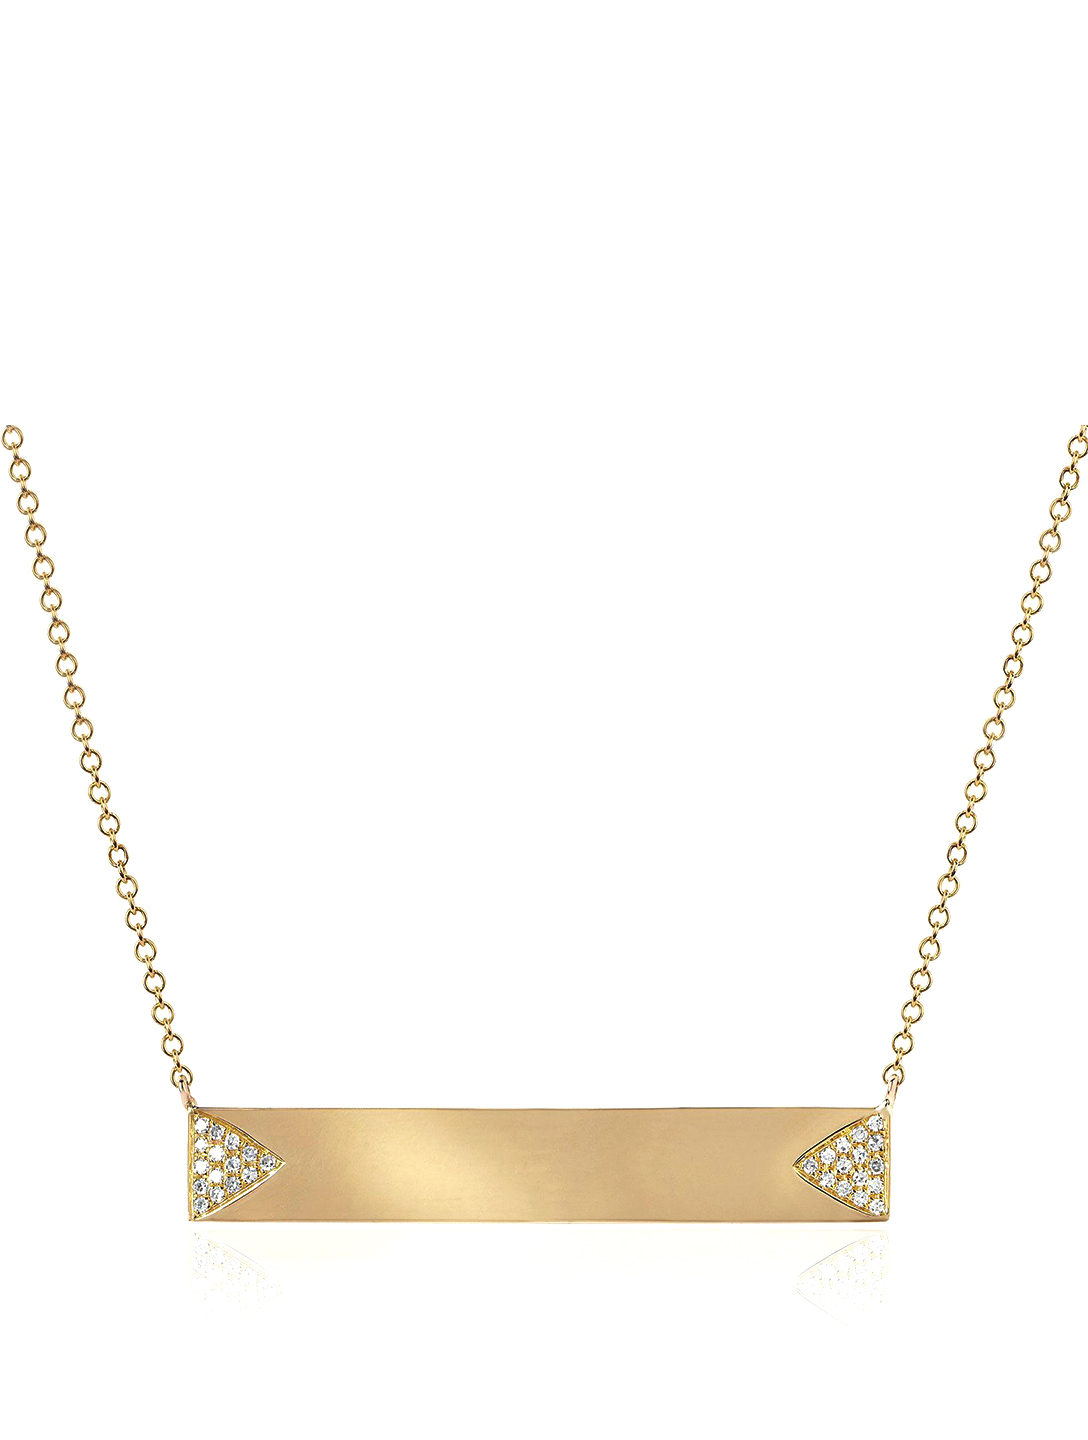 EF COLLECTION 14K Gold Triangle Nameplate Necklace With Diamonds Women's Metallic